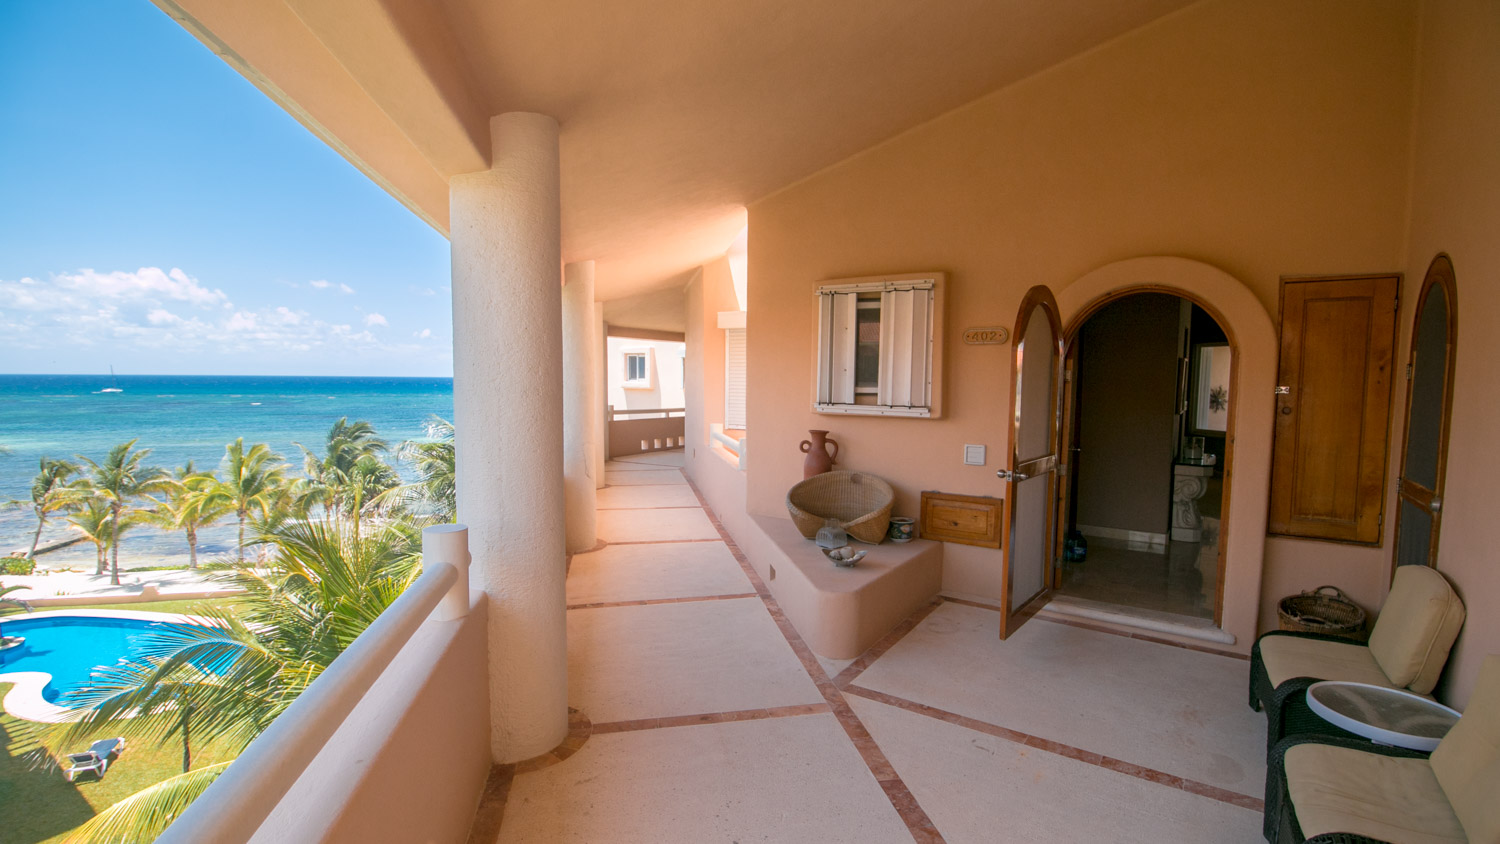 Breathtaking 2 bedroom Penthouse in Puerto Aventuras. property for sale